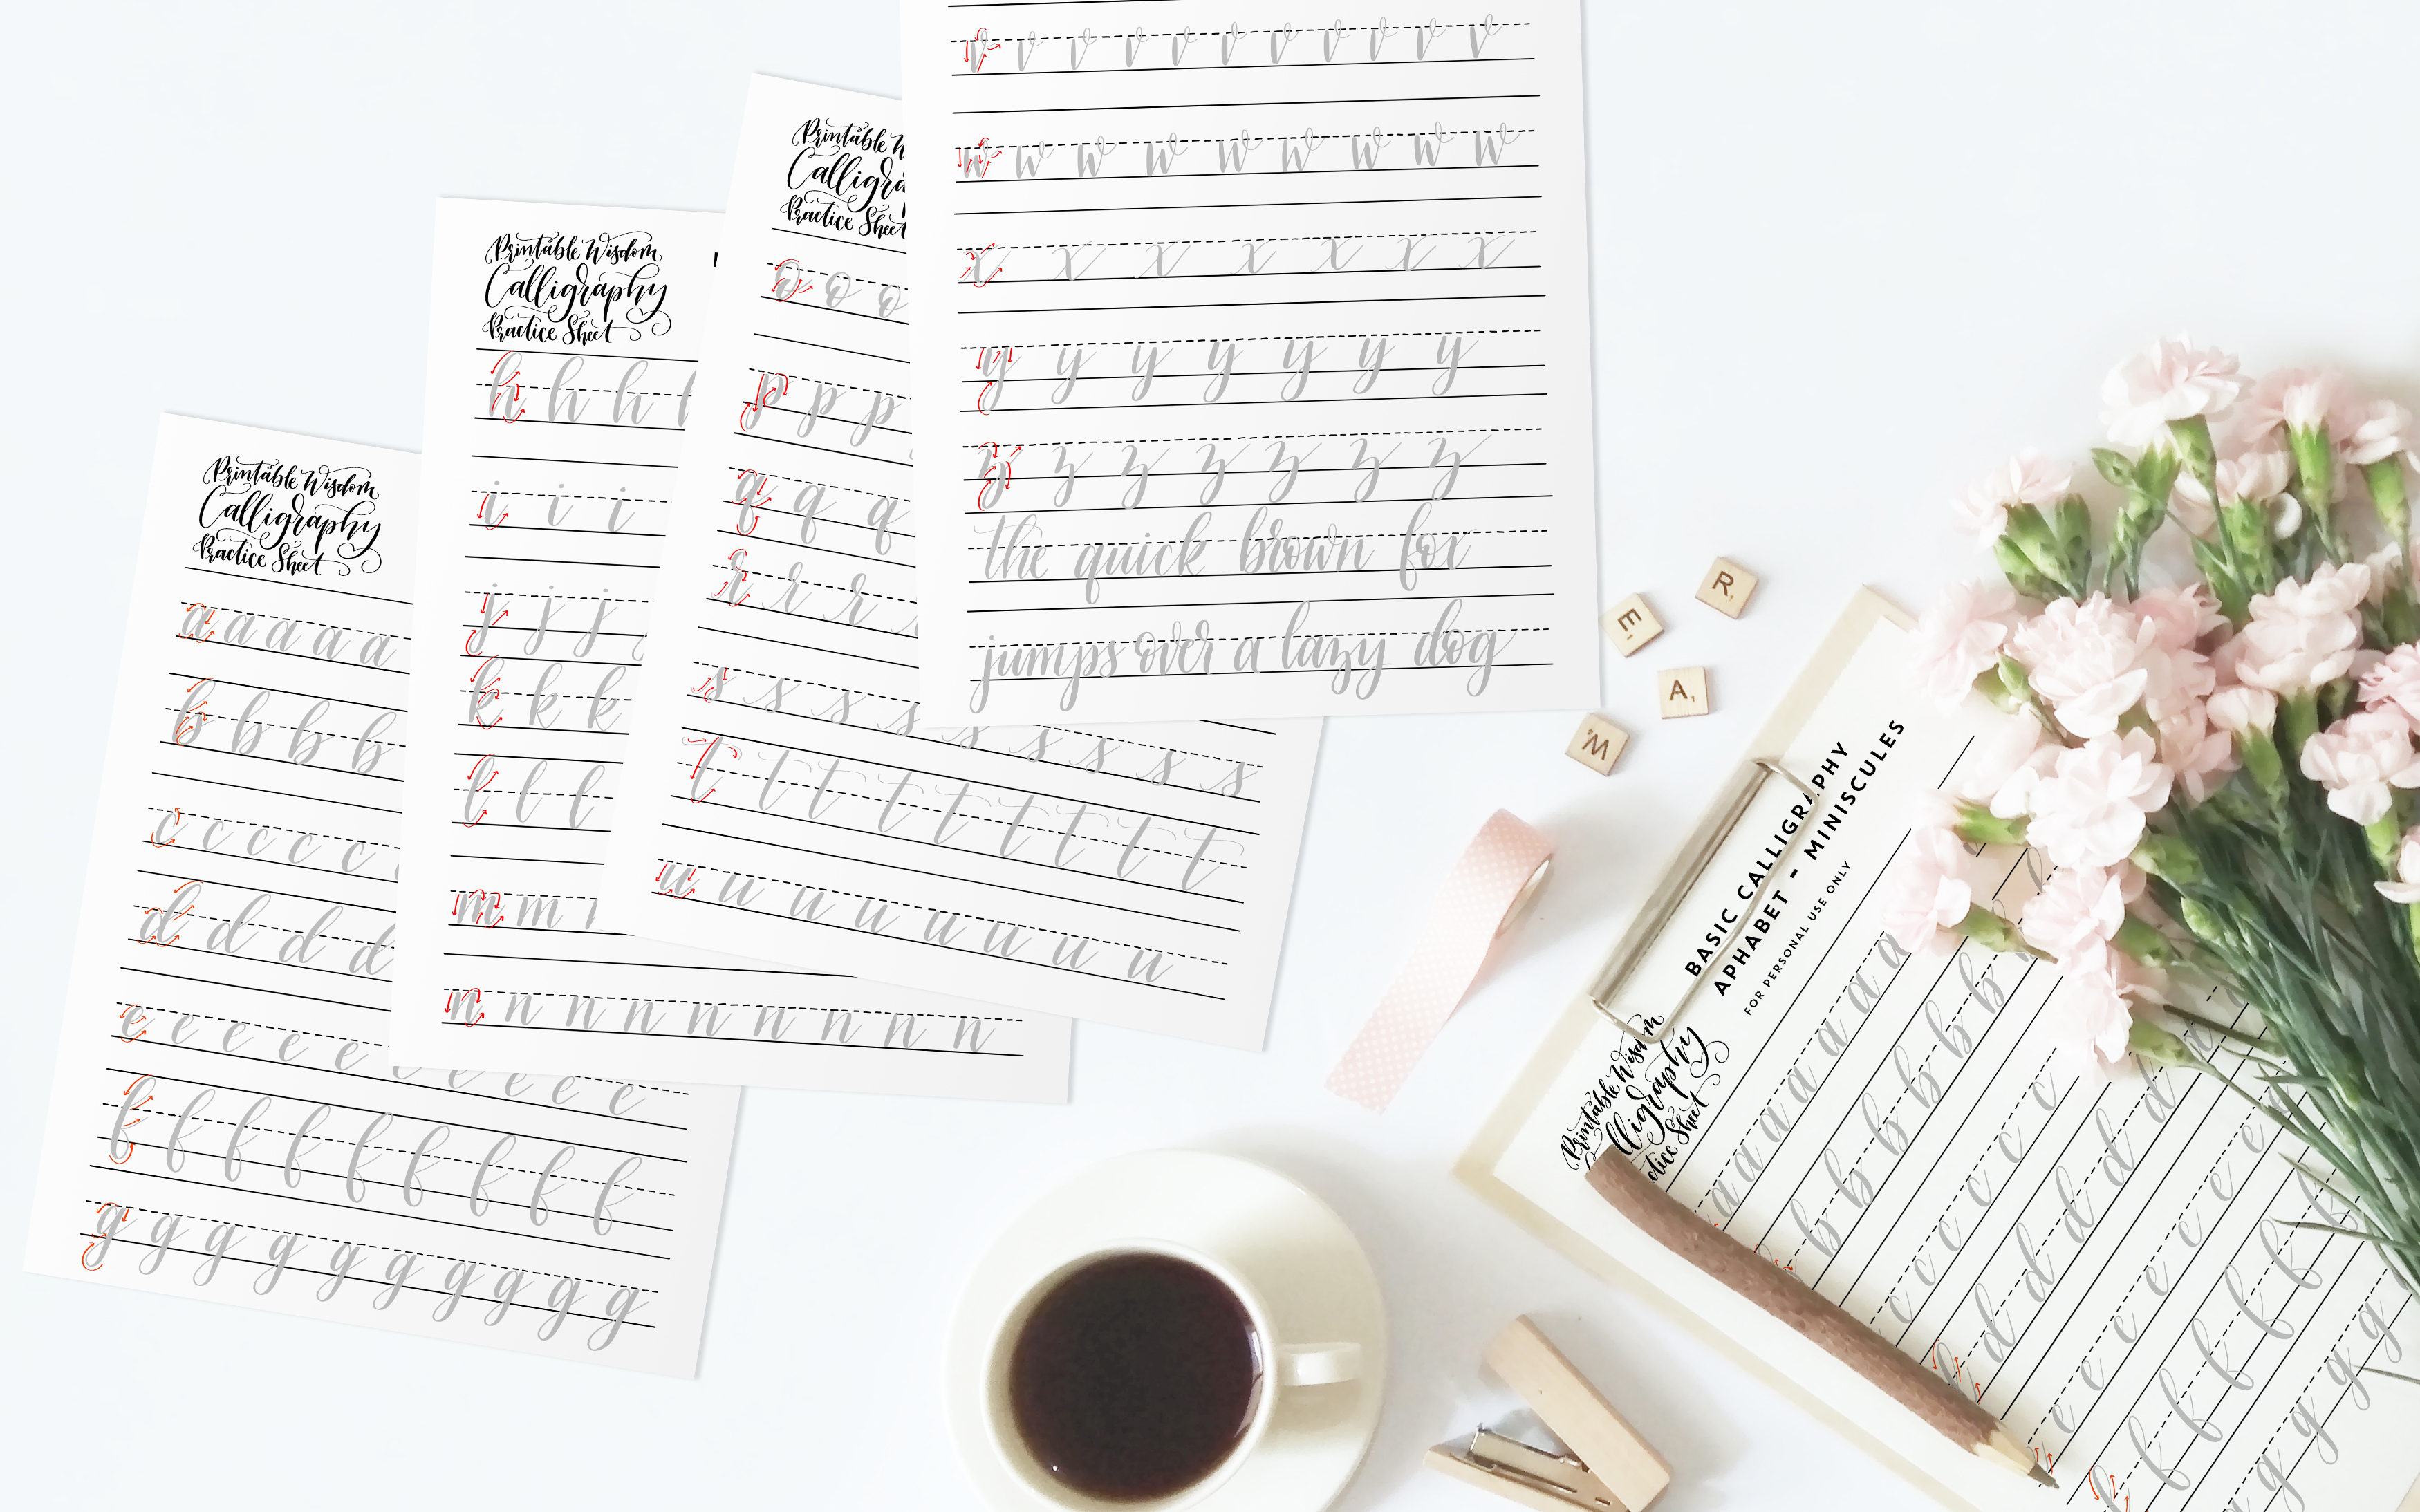 Ten Most Common Beginner Calligraphy Mistakes Printable